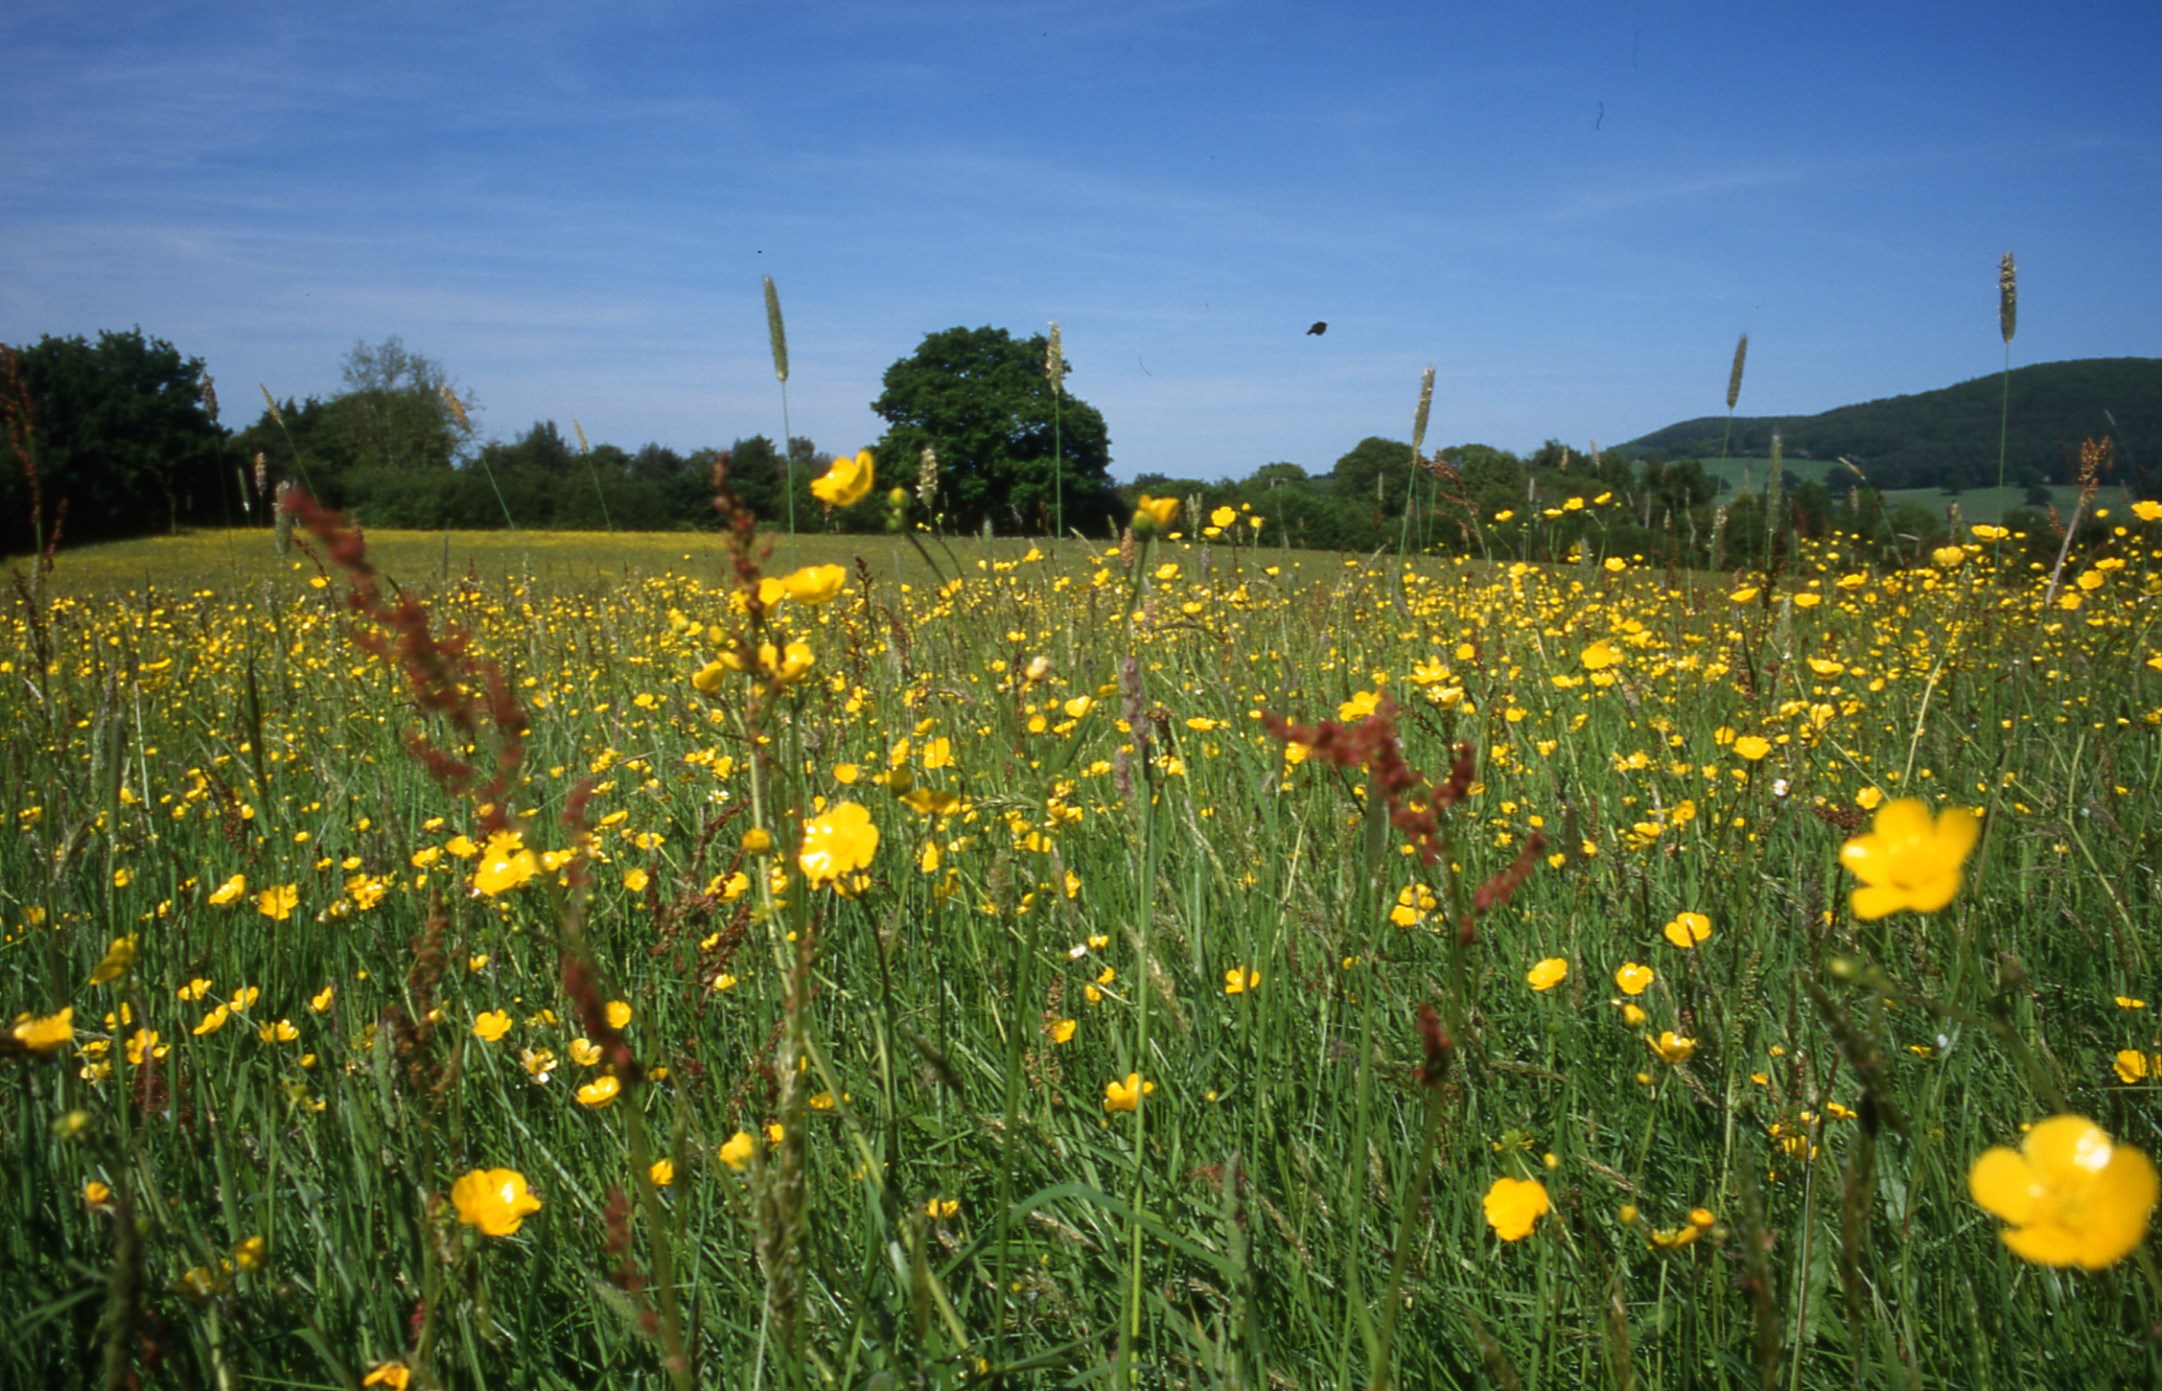 UK Organic Farmland in conversion increases with growing organic market